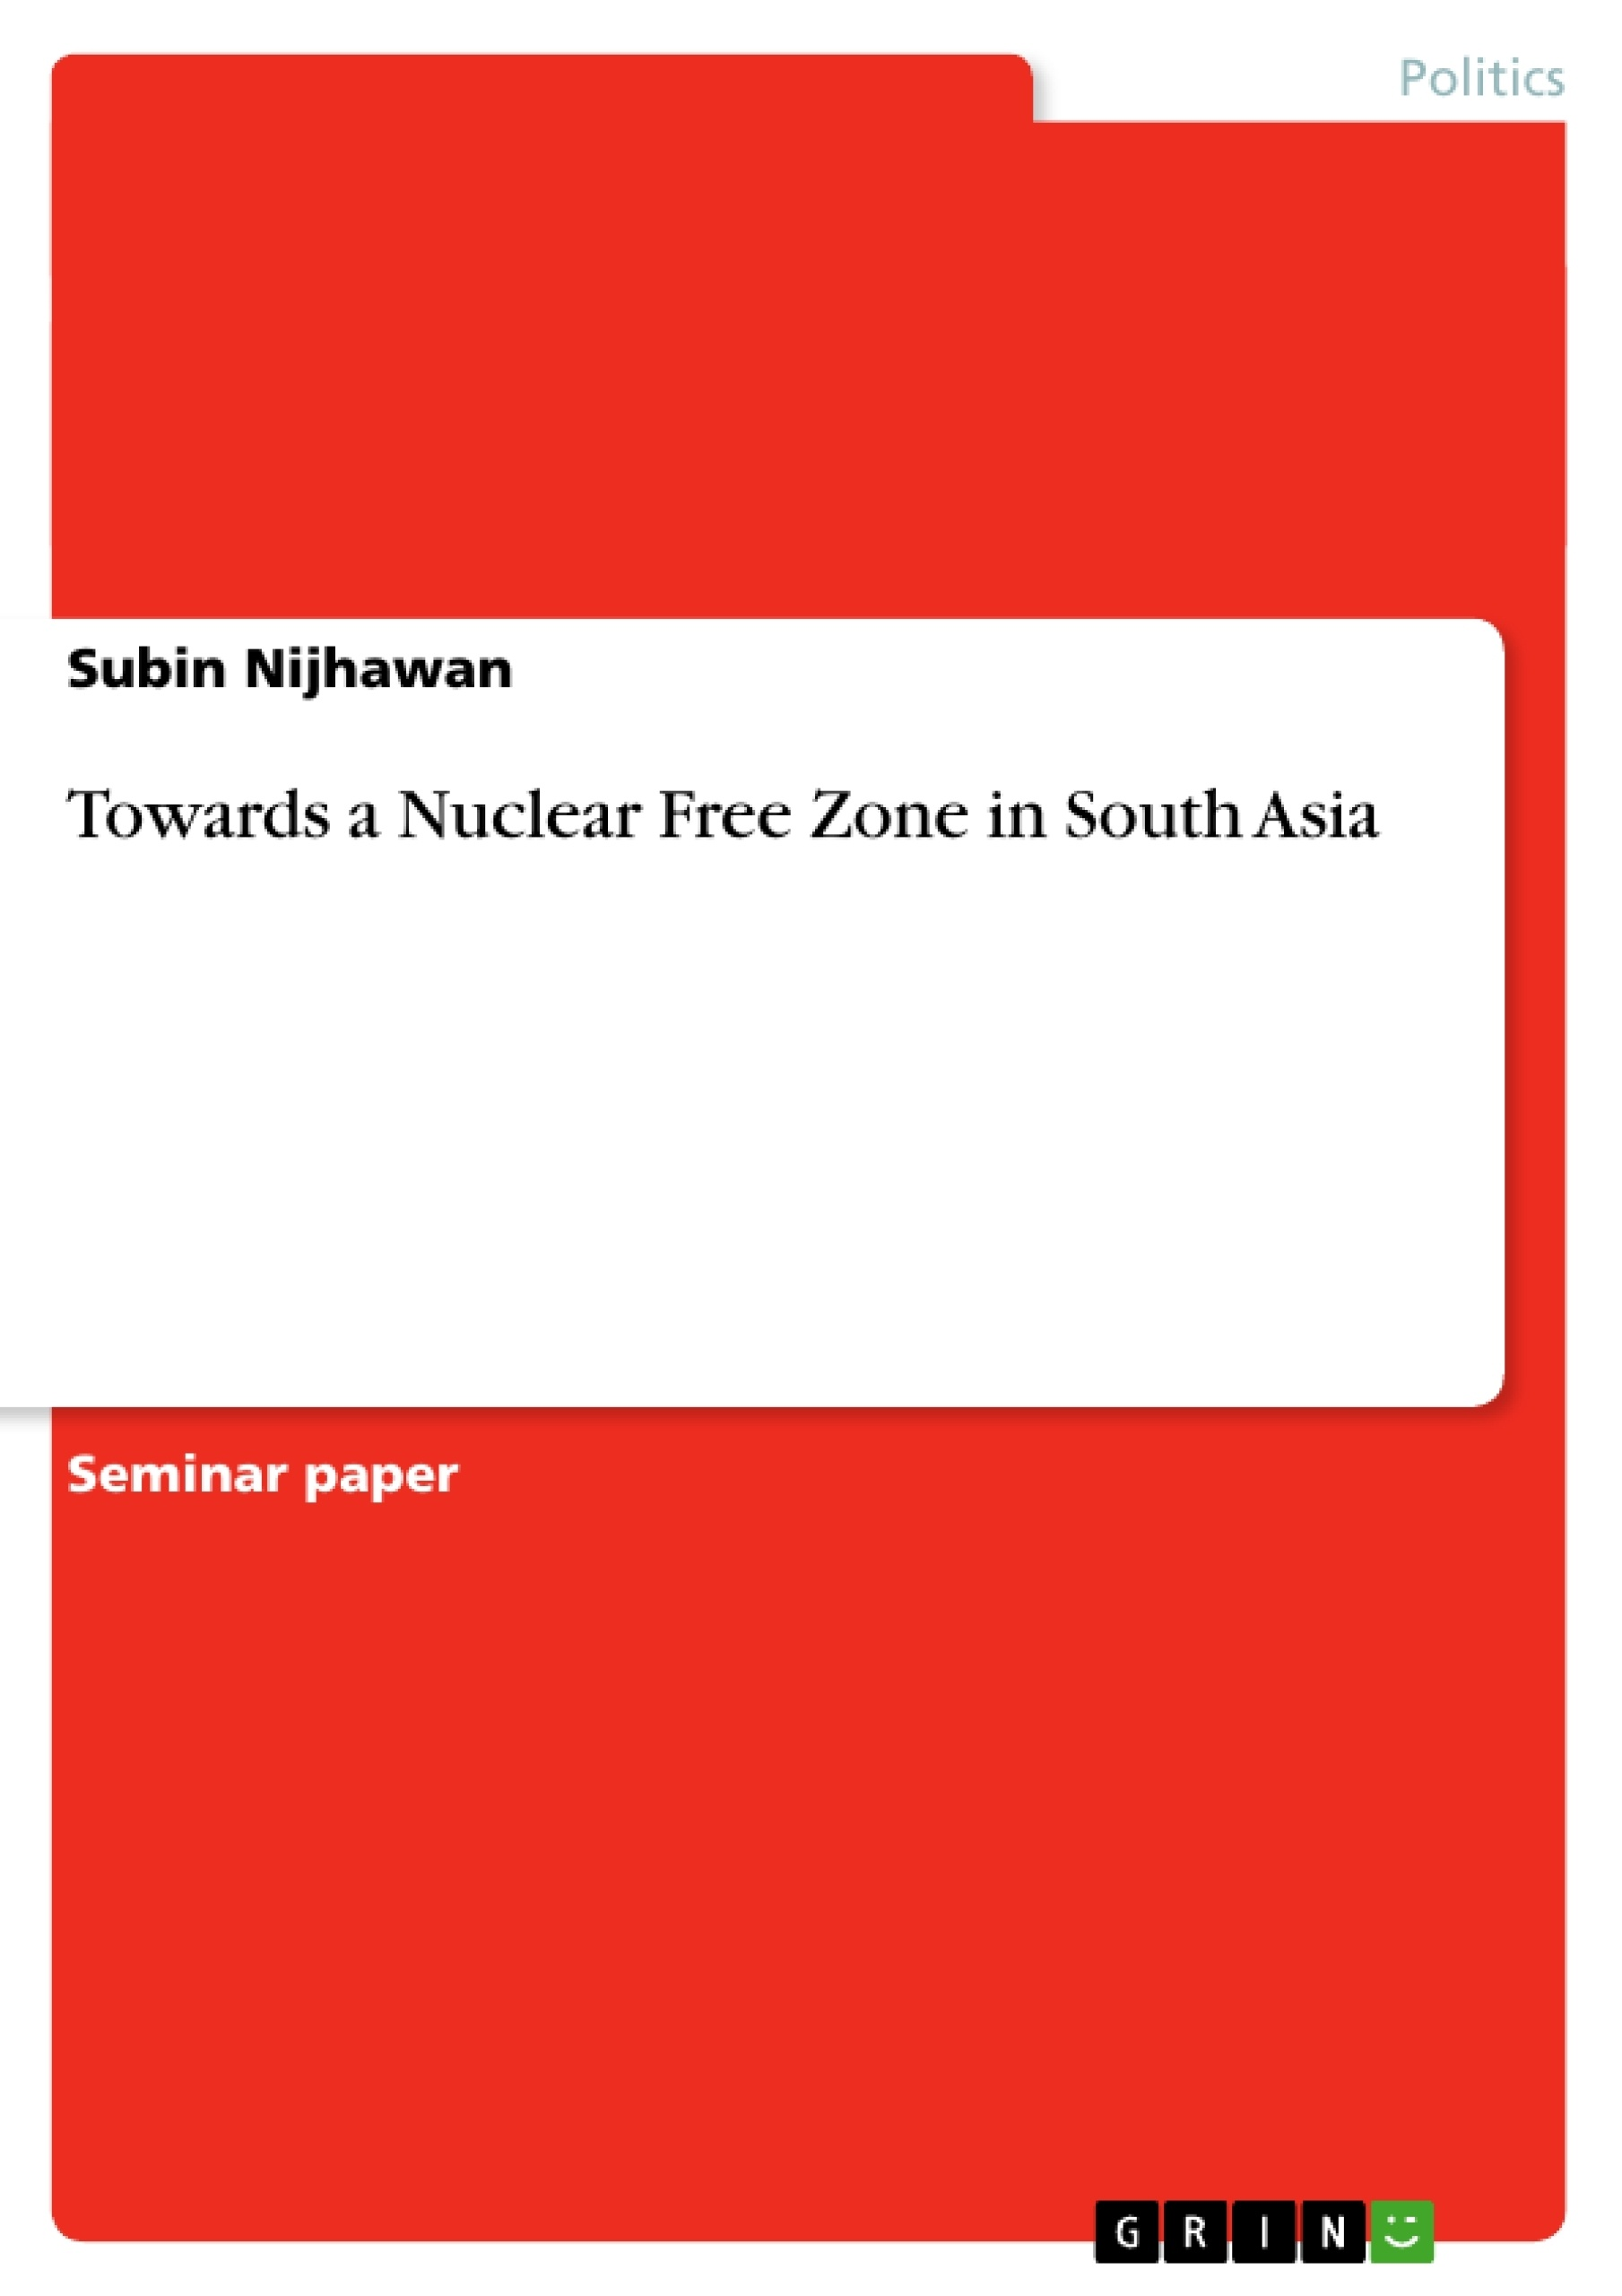 Title: Towards a Nuclear Free Zone in South Asia